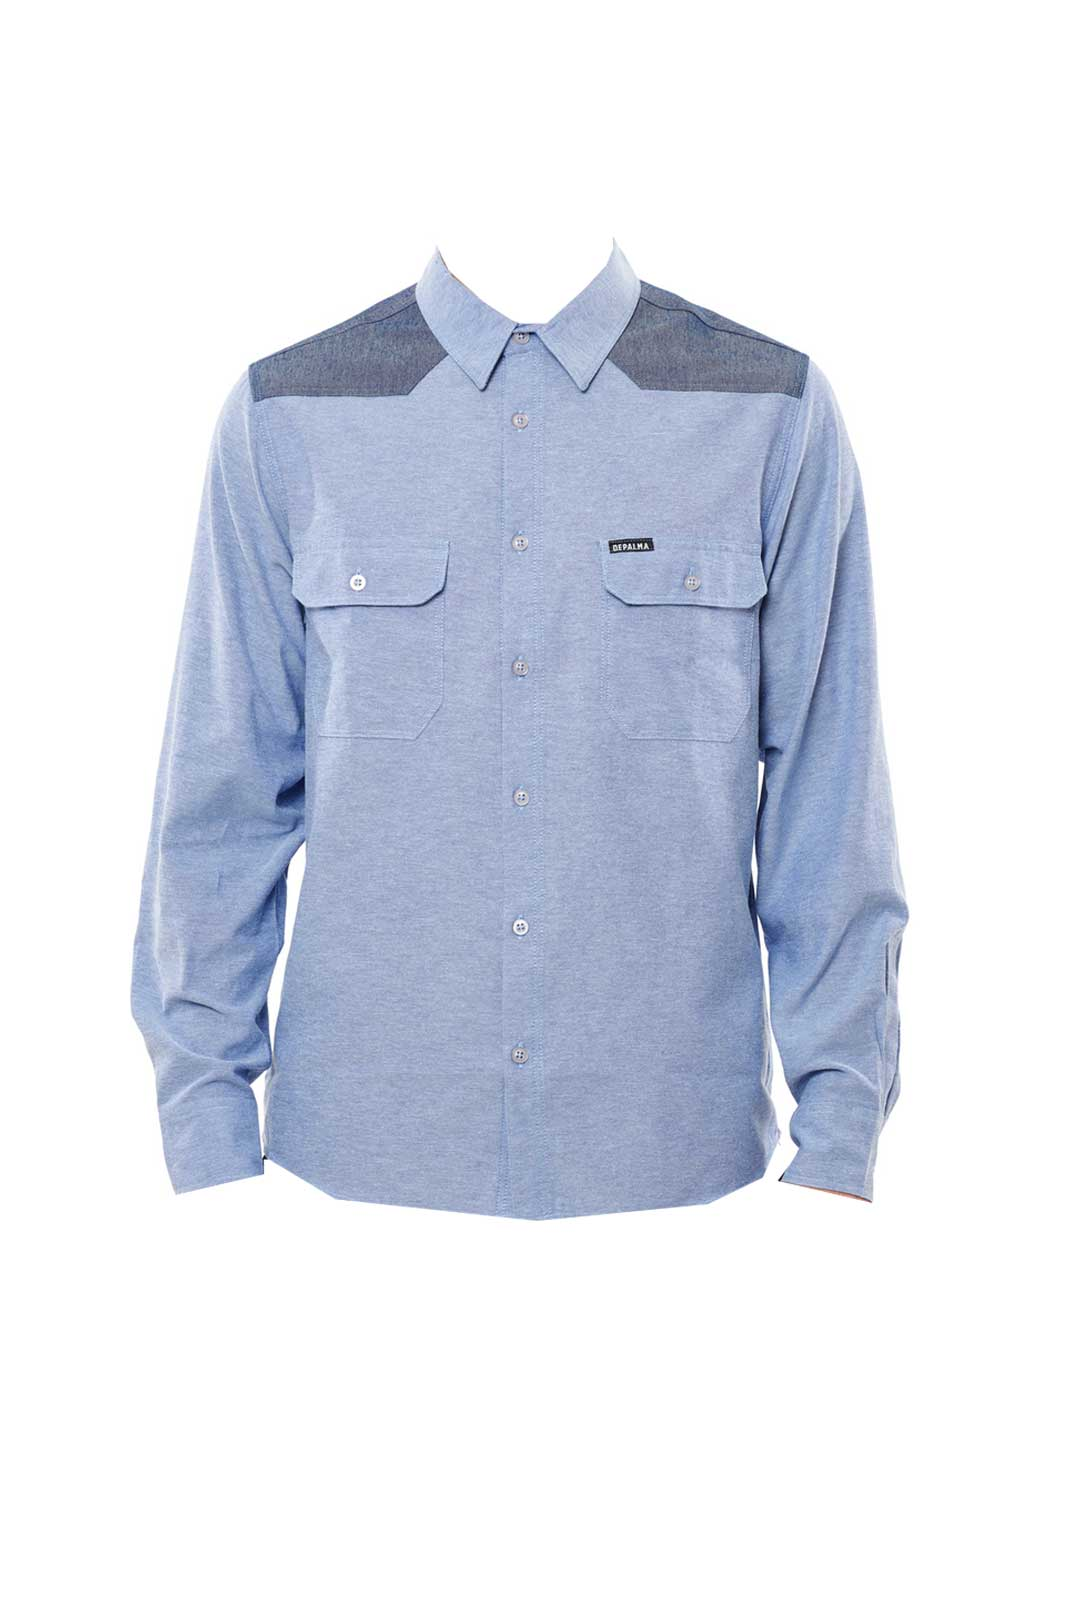 Racing the Street Shirt Blue Front